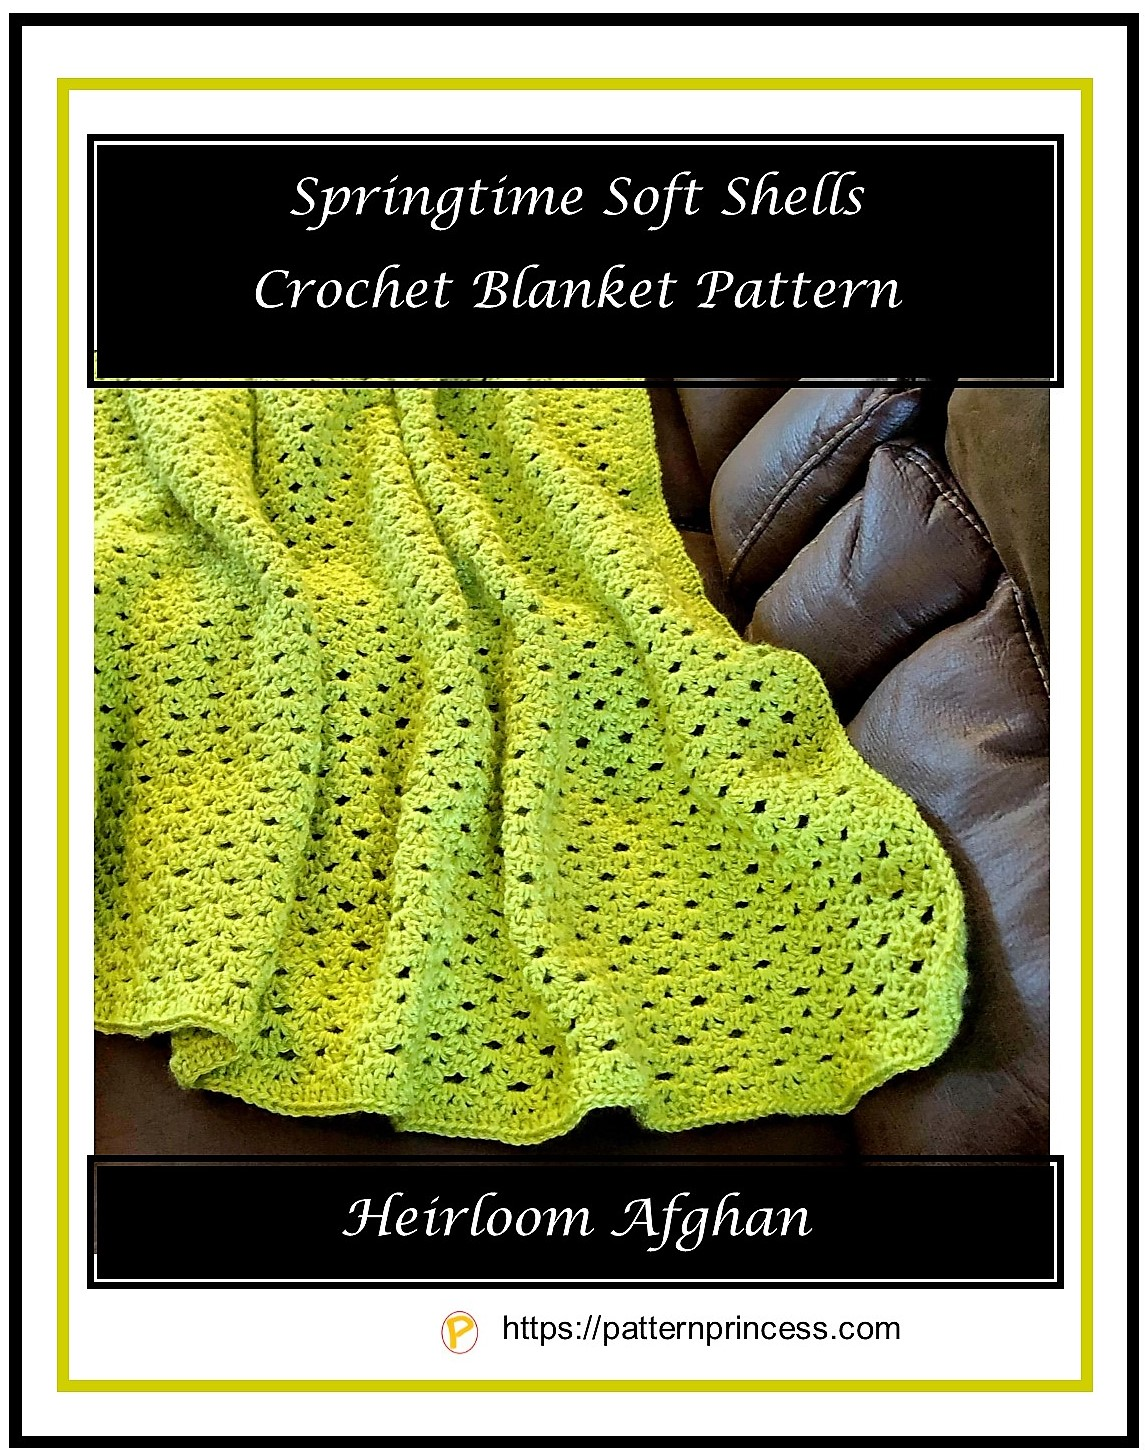 Springtime Soft Shells Crochet Blanket Pattern 1